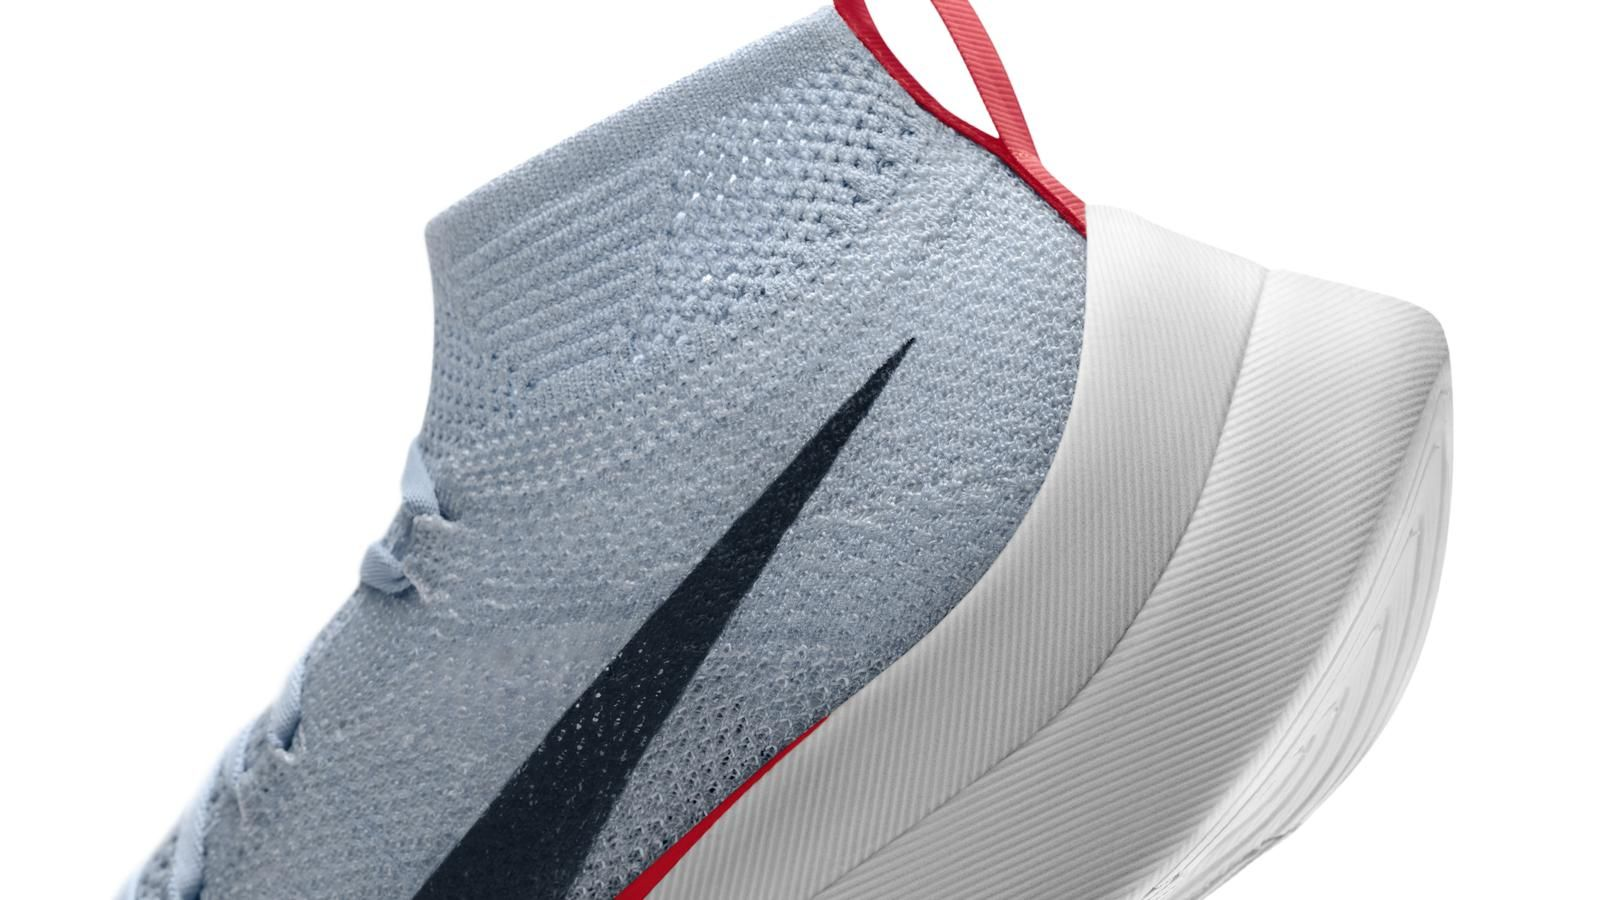 8766a0d96038b Nike News - Introducing the Nike Zoom Vaporfly Elite Featuring Nike ZoomX  Midsole